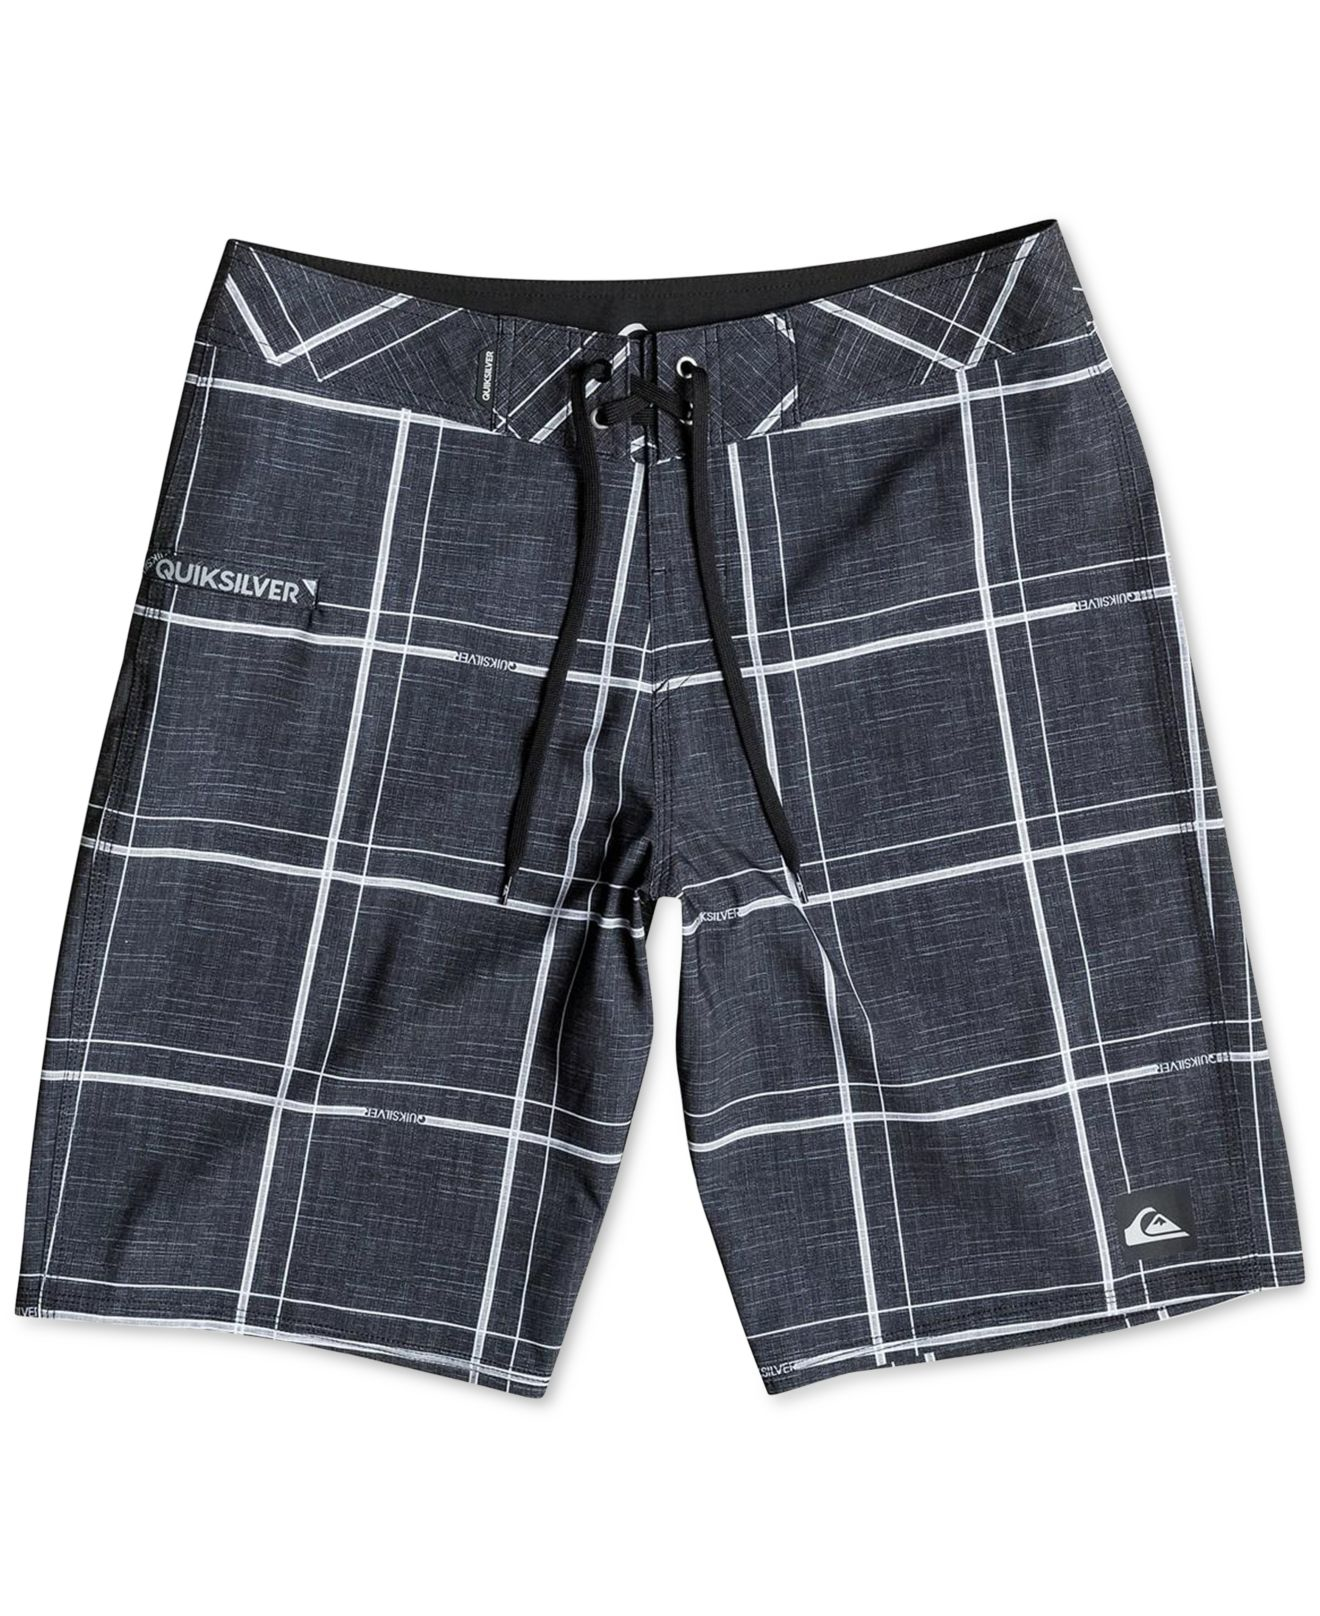 34ddac2066 Quiksilver Quicksilver Electric Stretch 21 Board Shorts in Black for ...